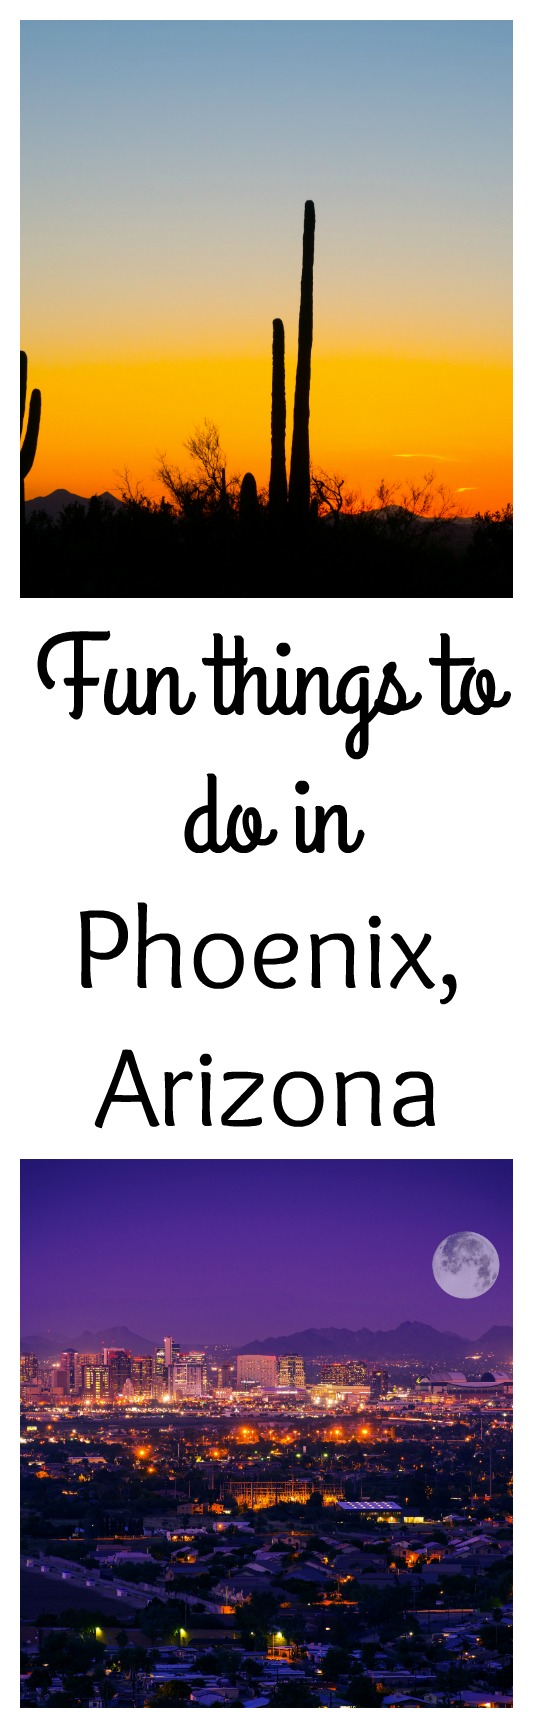 Are you looking for things to do in Phoenix, Arizona? Arizona is so much more than heat and desert. Here is a list of fun things to do in Phoenix, Arizona